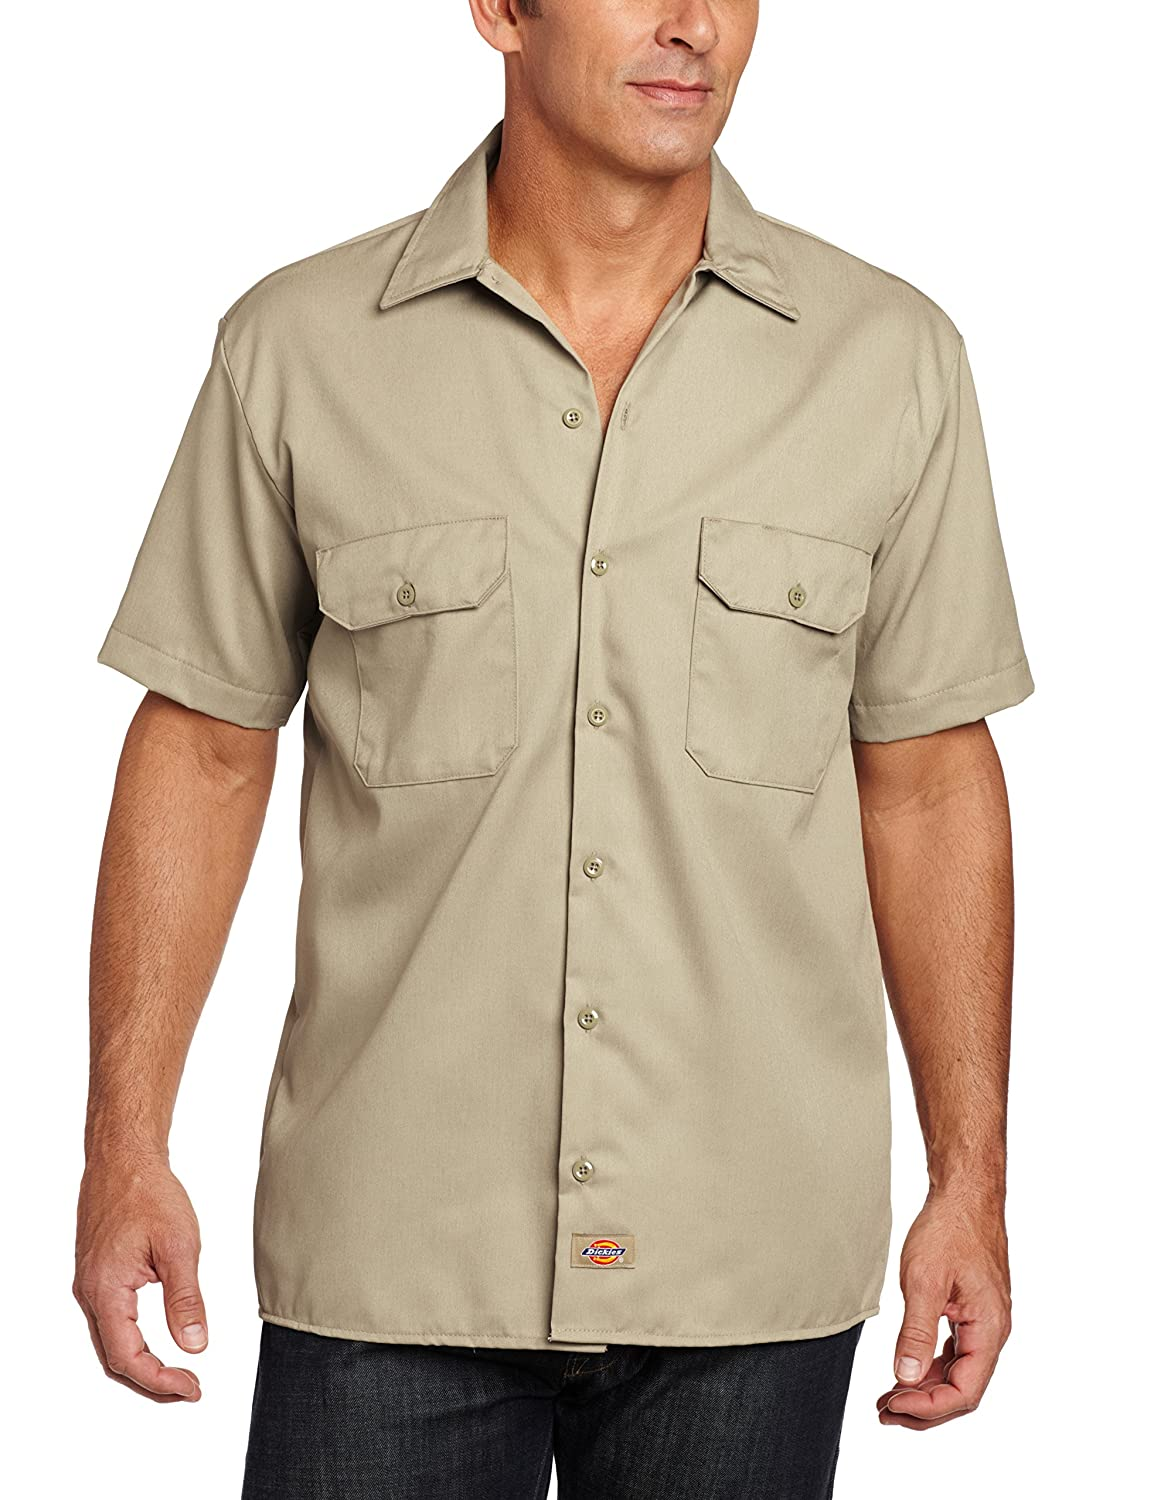 1930s Style Mens Shirts Short-Sleeve Work Shirt $49.00 AT vintagedancer.com